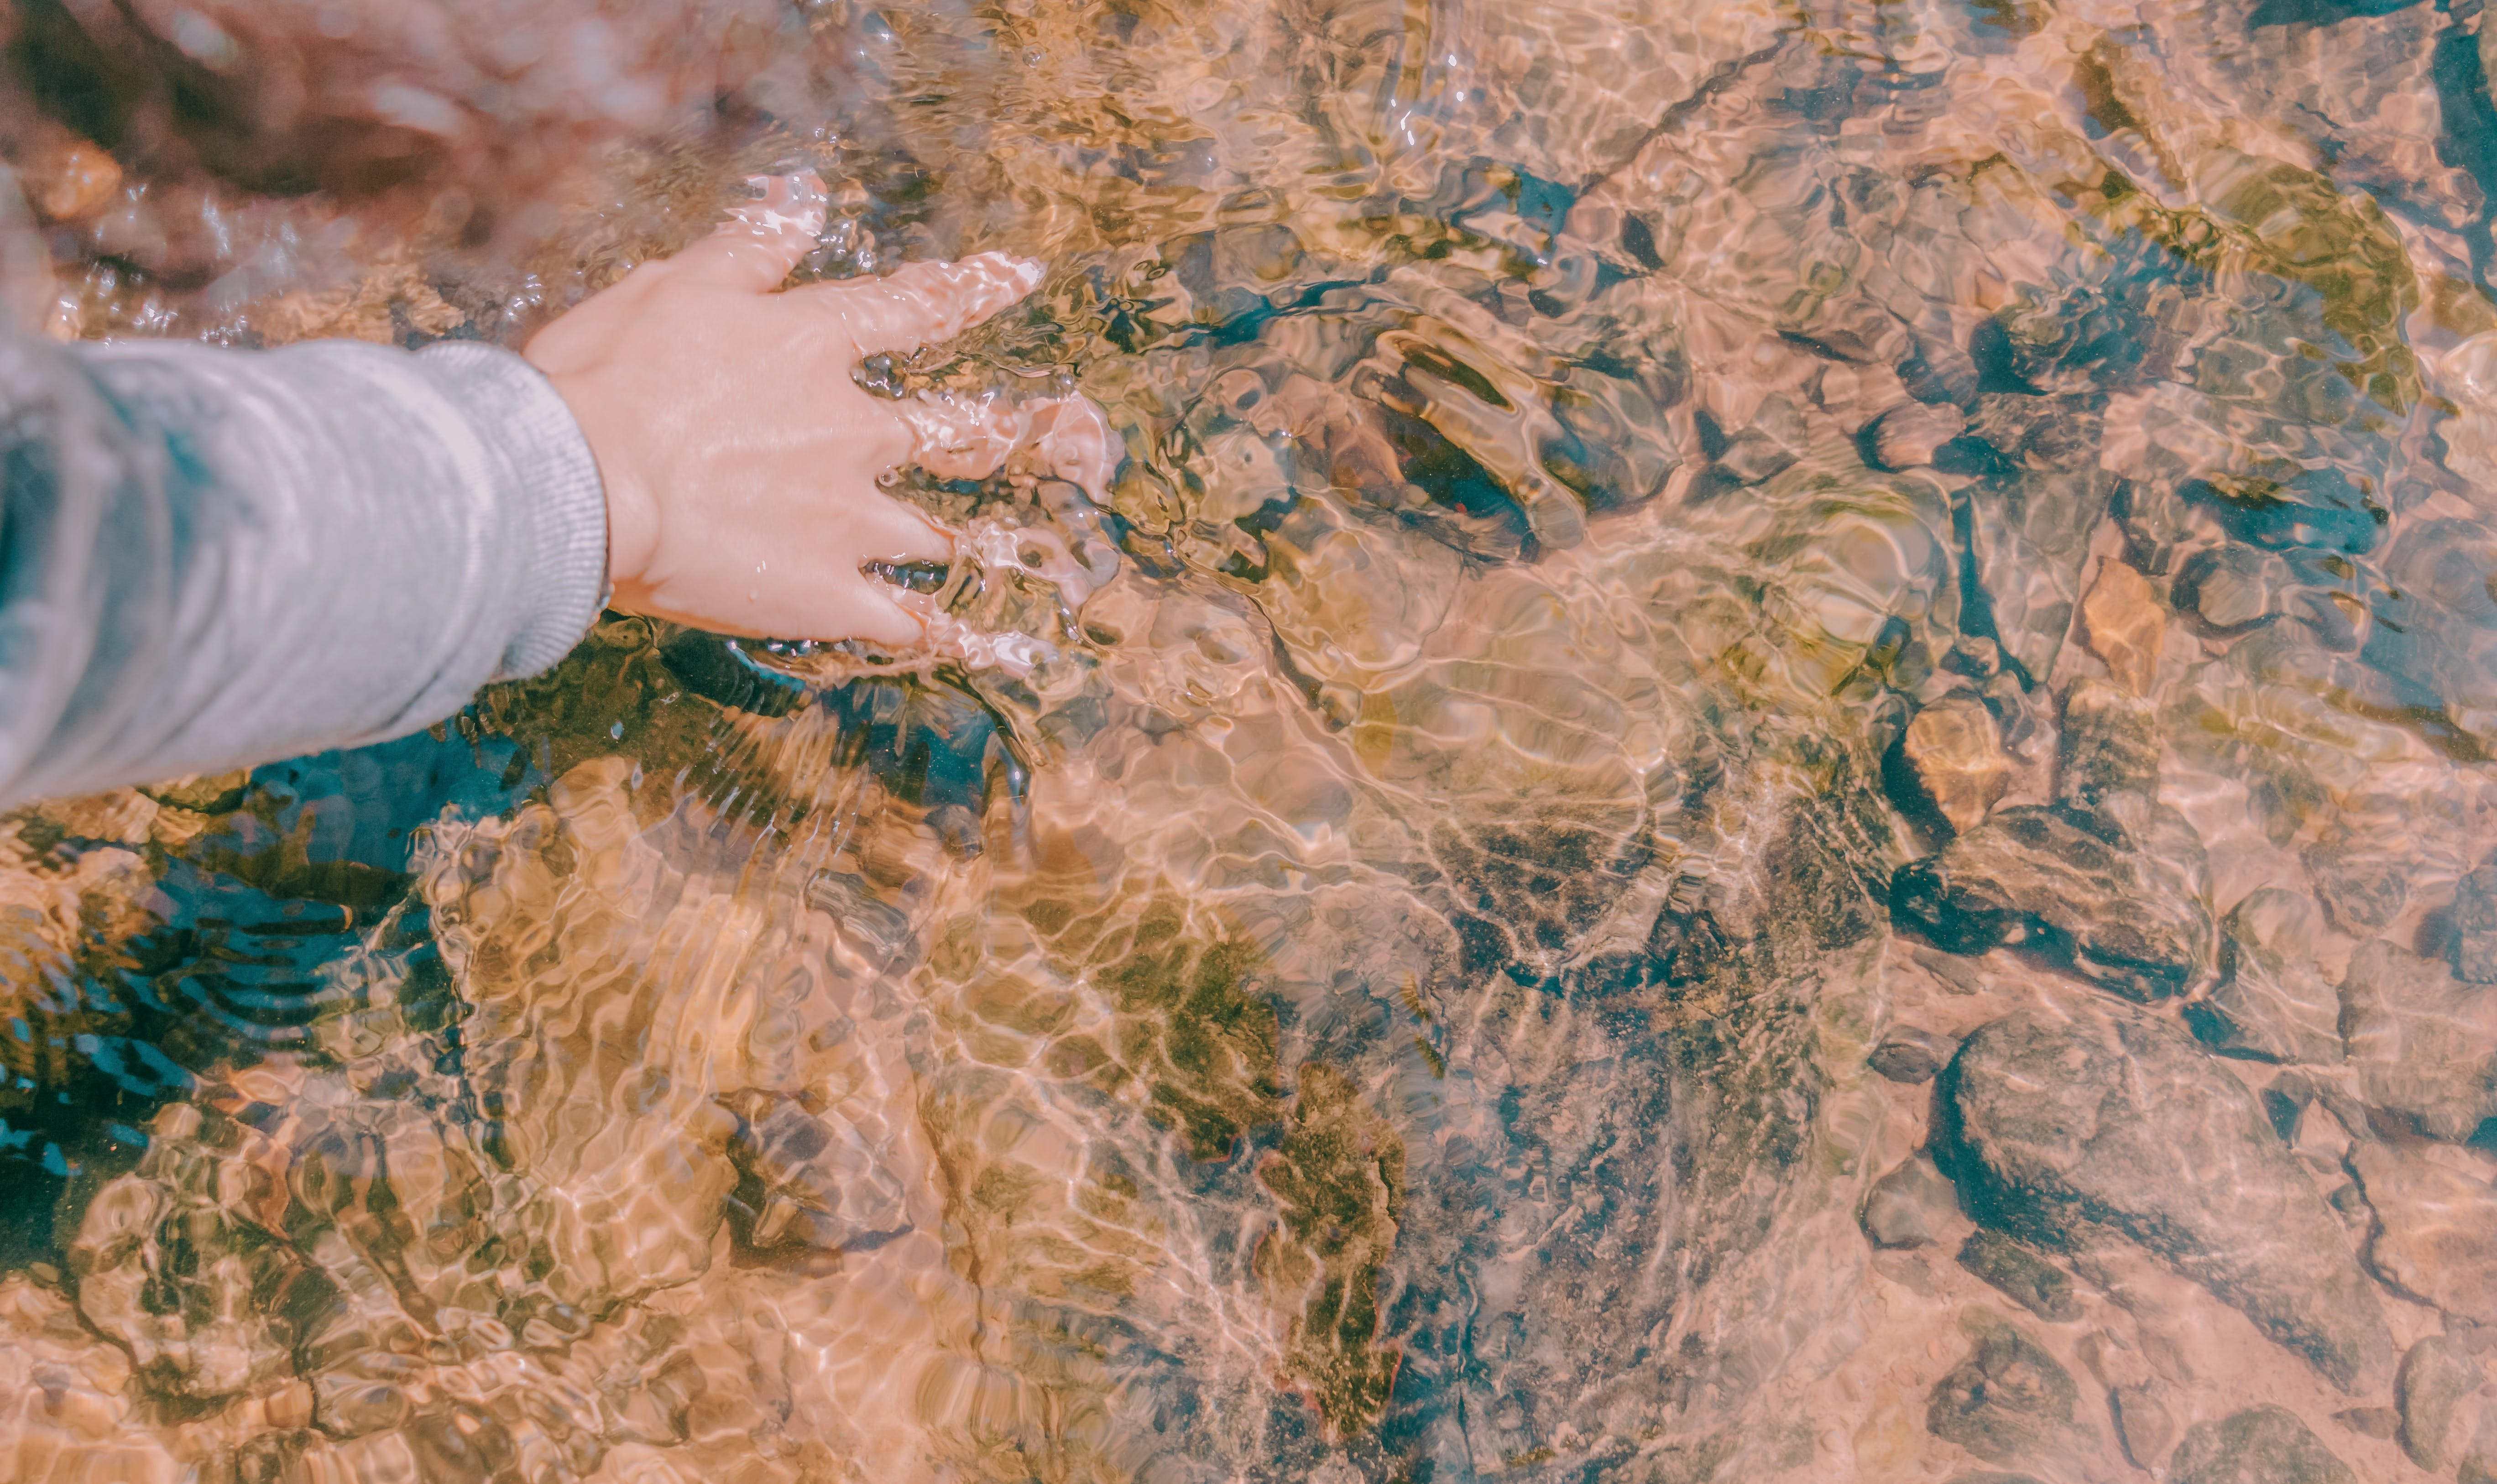 Person's Right Hand Touching Body of Water